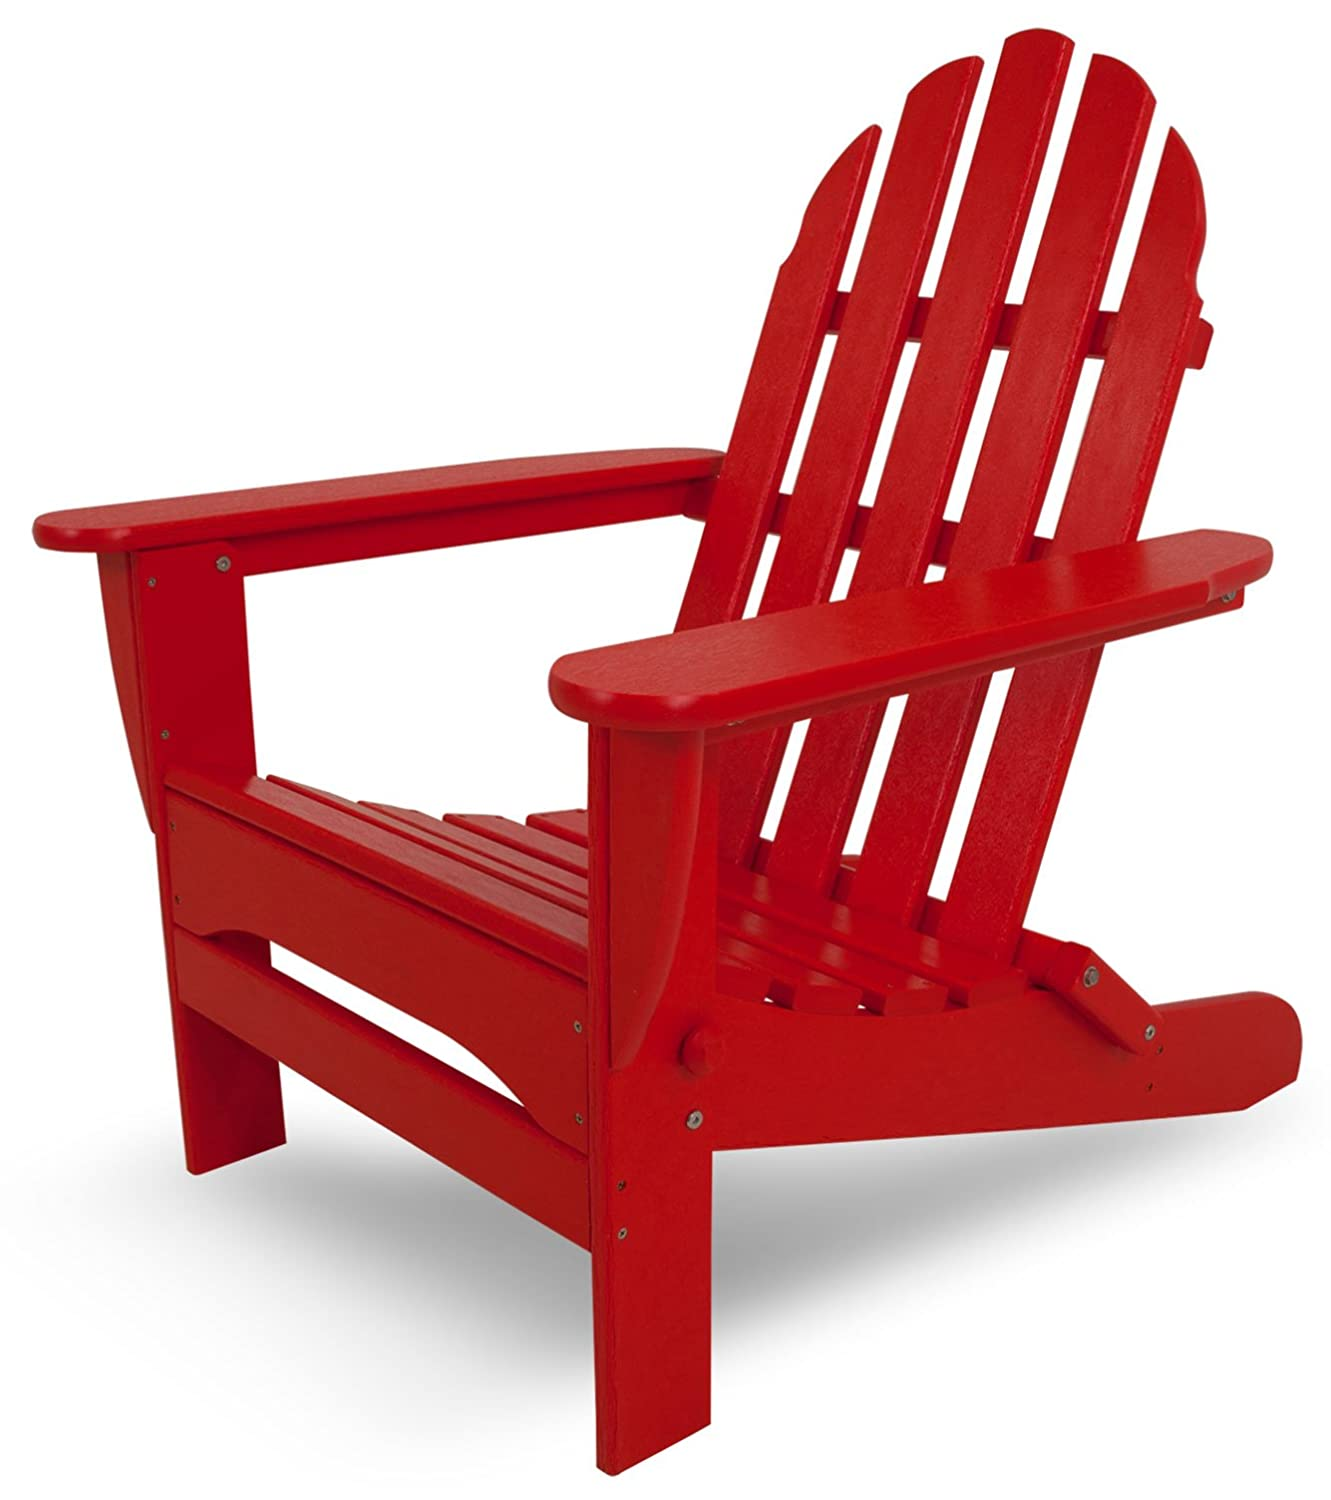 Genial Amazon.com : POLYWOOD AD5030SR Classic Folding Adirondack, Sunset Red : Adirondack  Chairs : Garden U0026 Outdoor